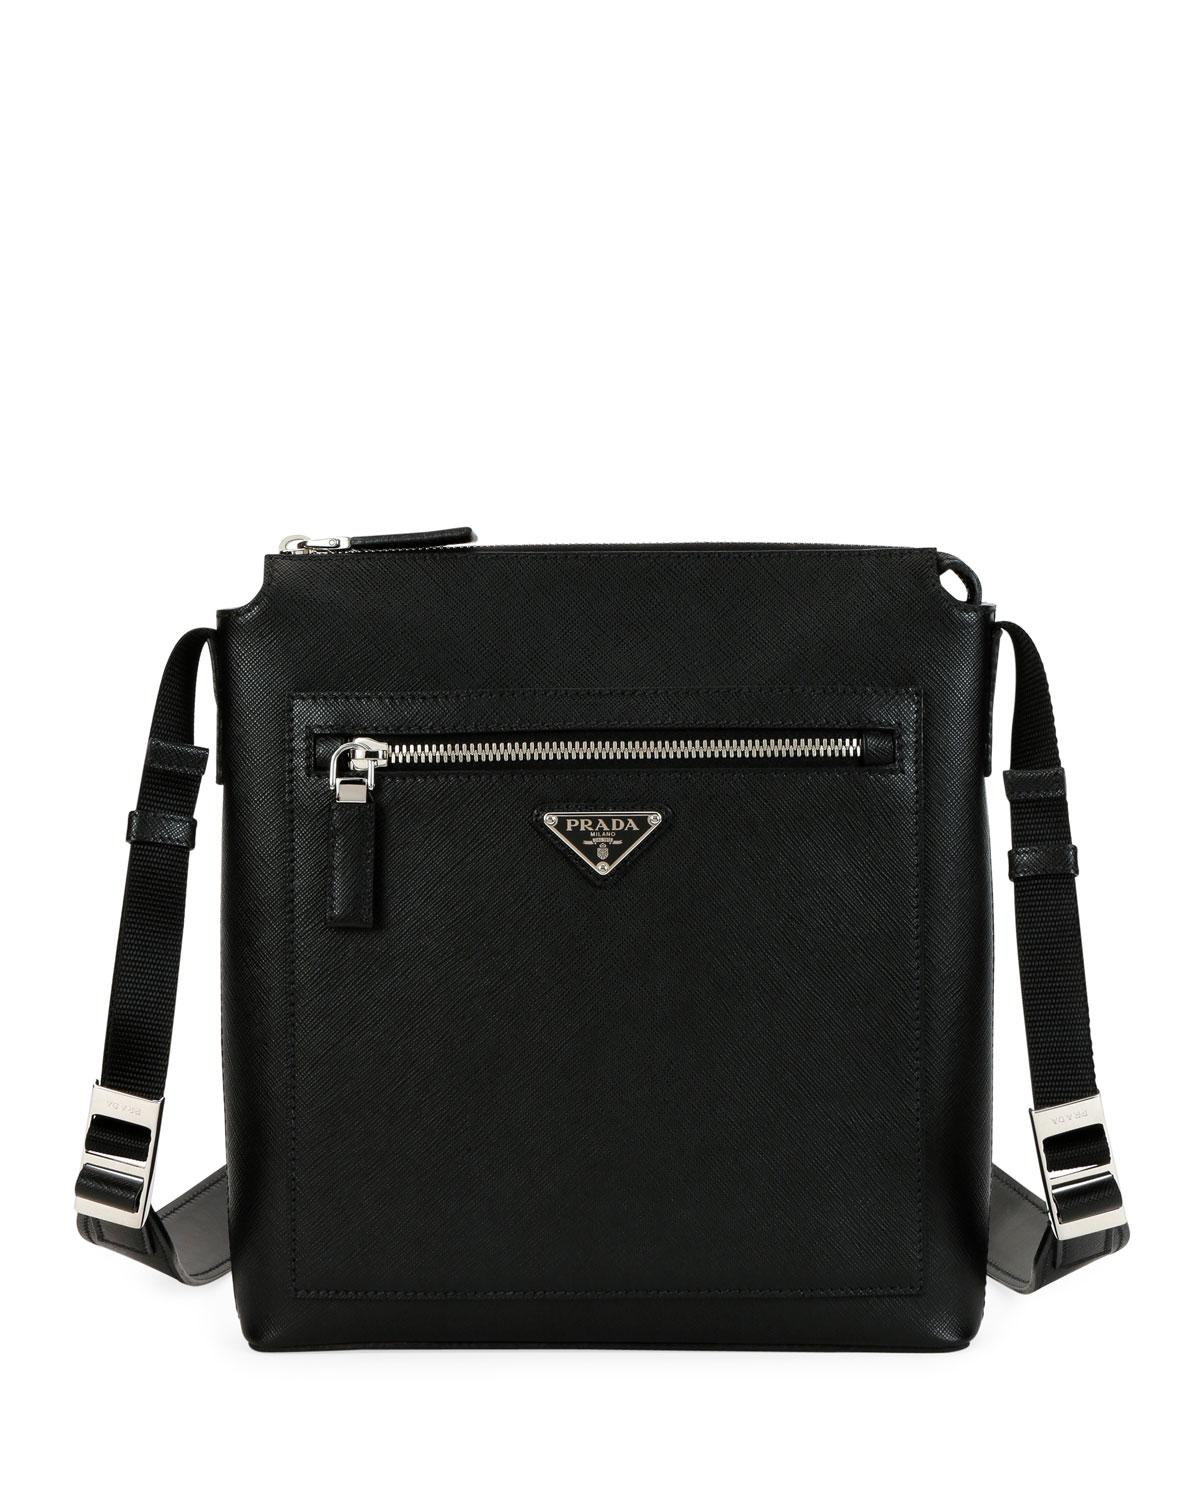 3864e61b0a78 Prada - Black Men s Saffiano Leather Travel Crossbody Bag - Lyst. View  fullscreen